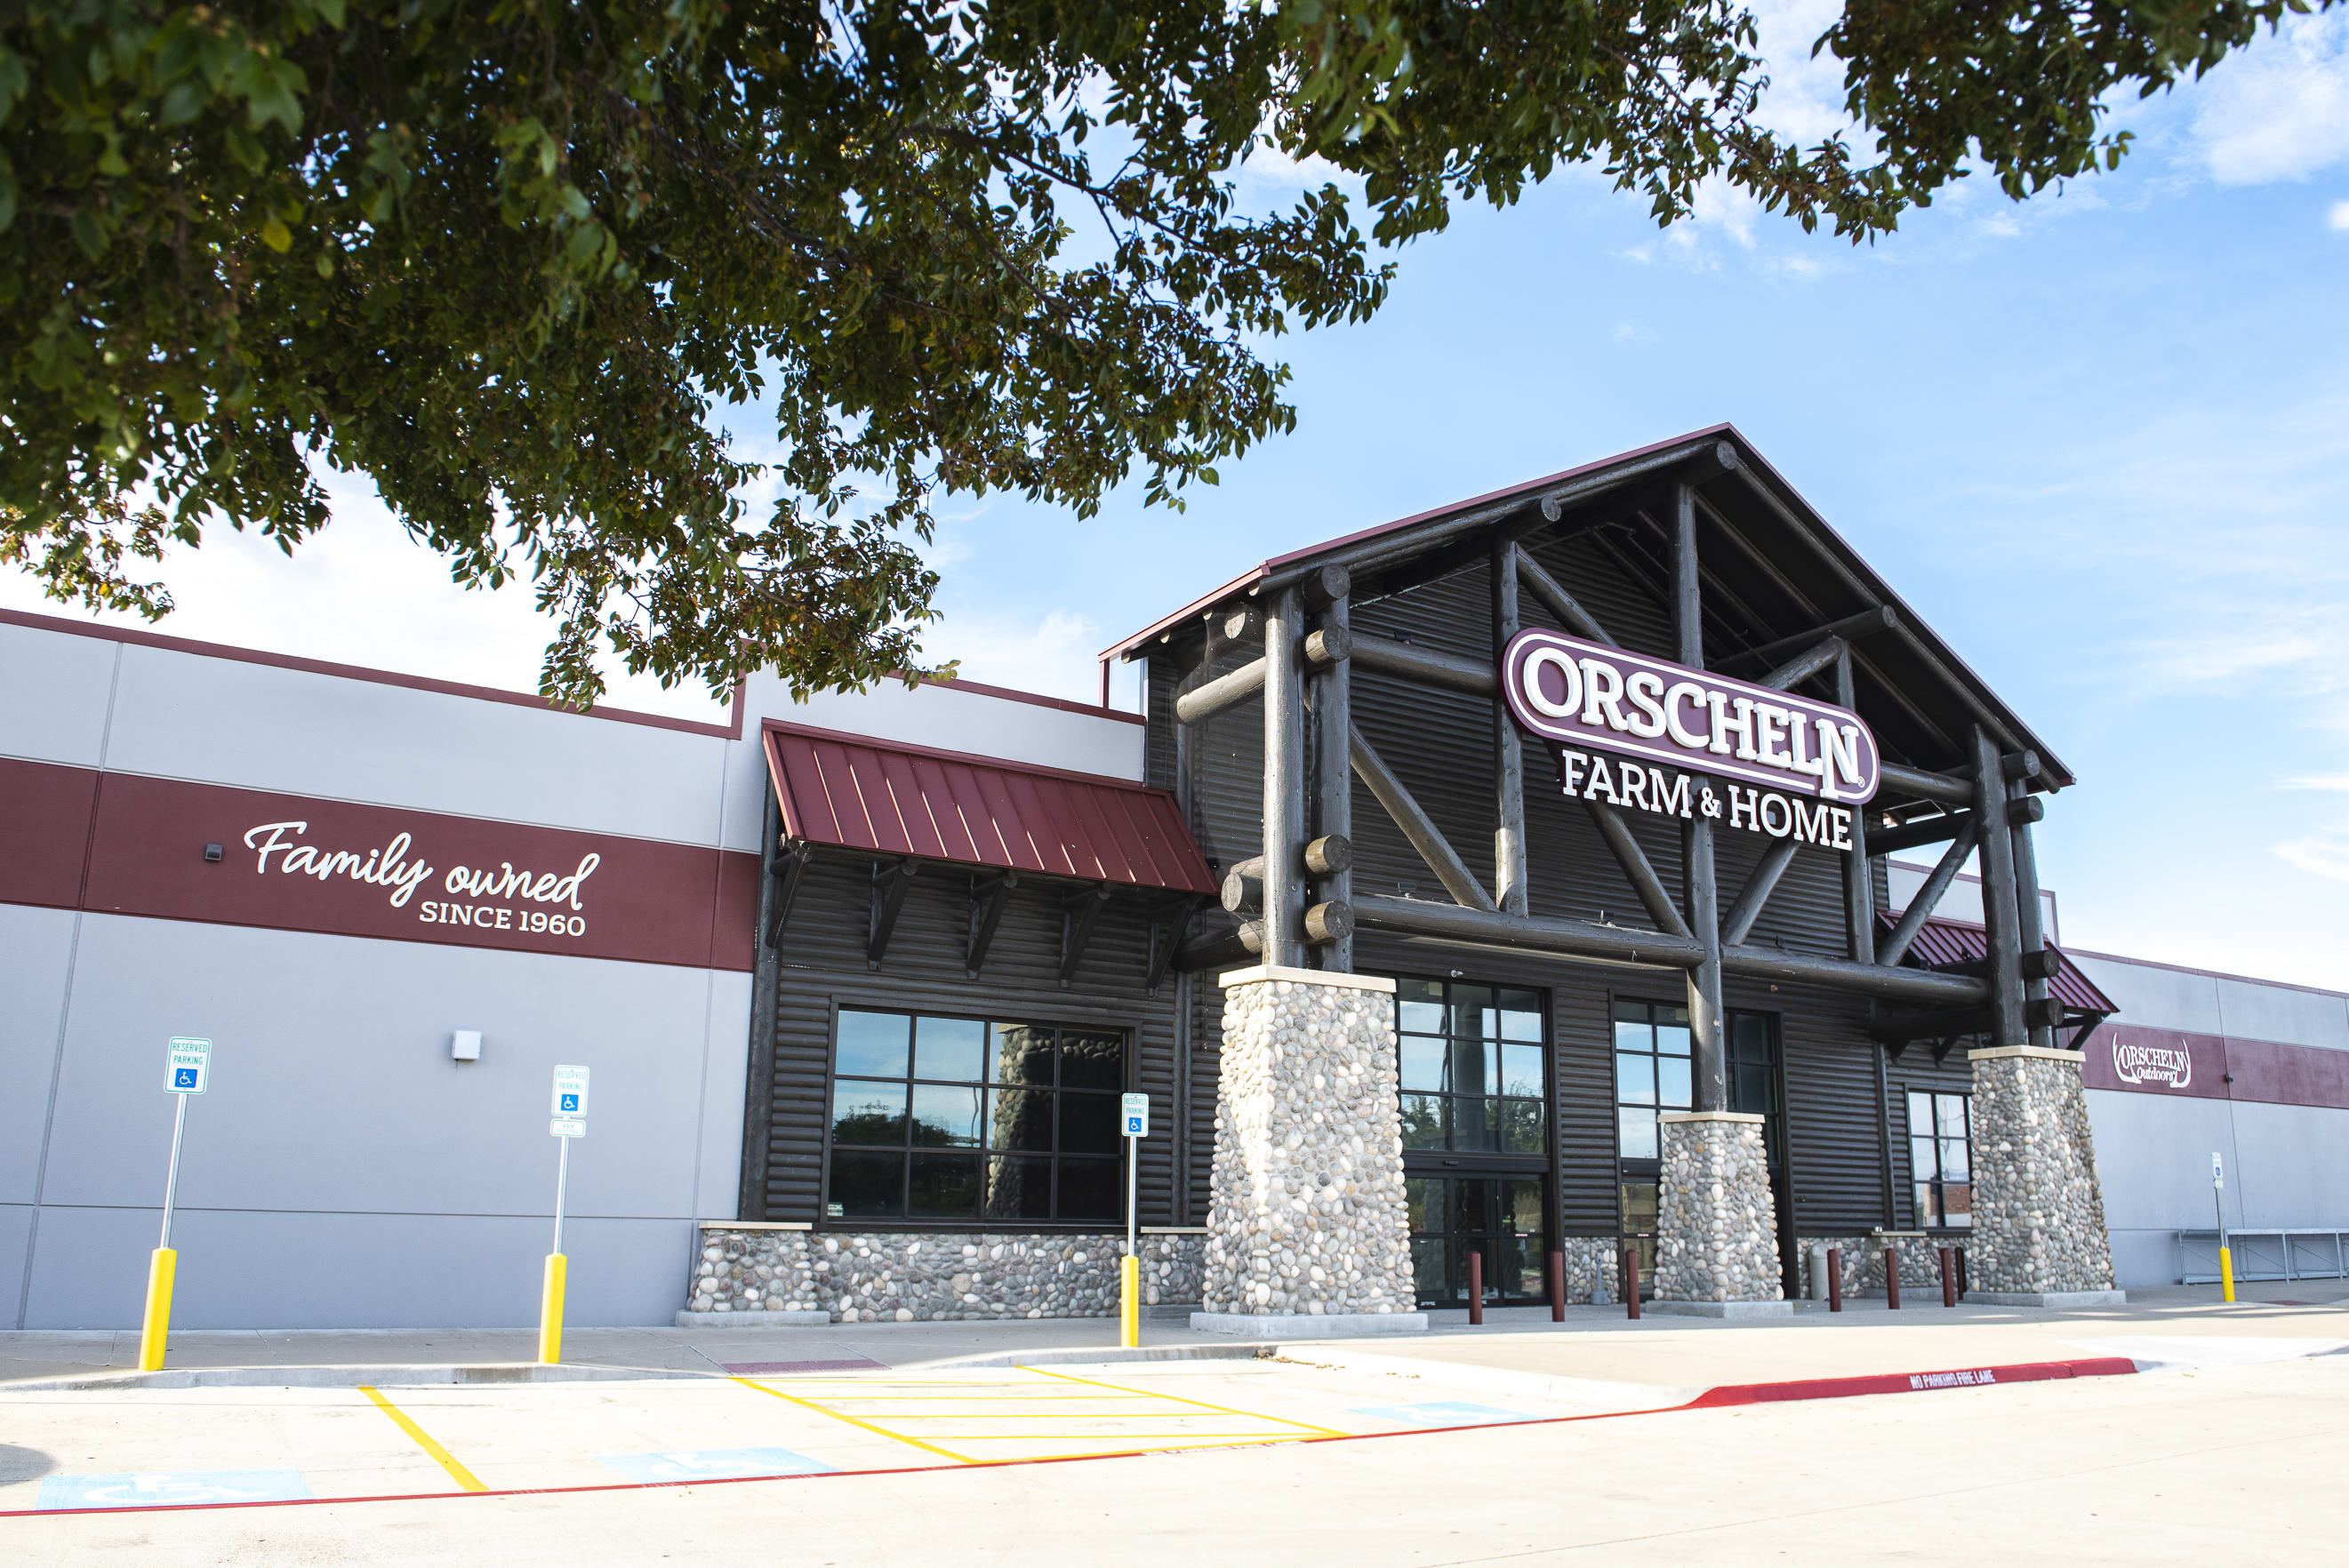 Front view of Orscheln Farm & Home Store in Waco, Texas 76706